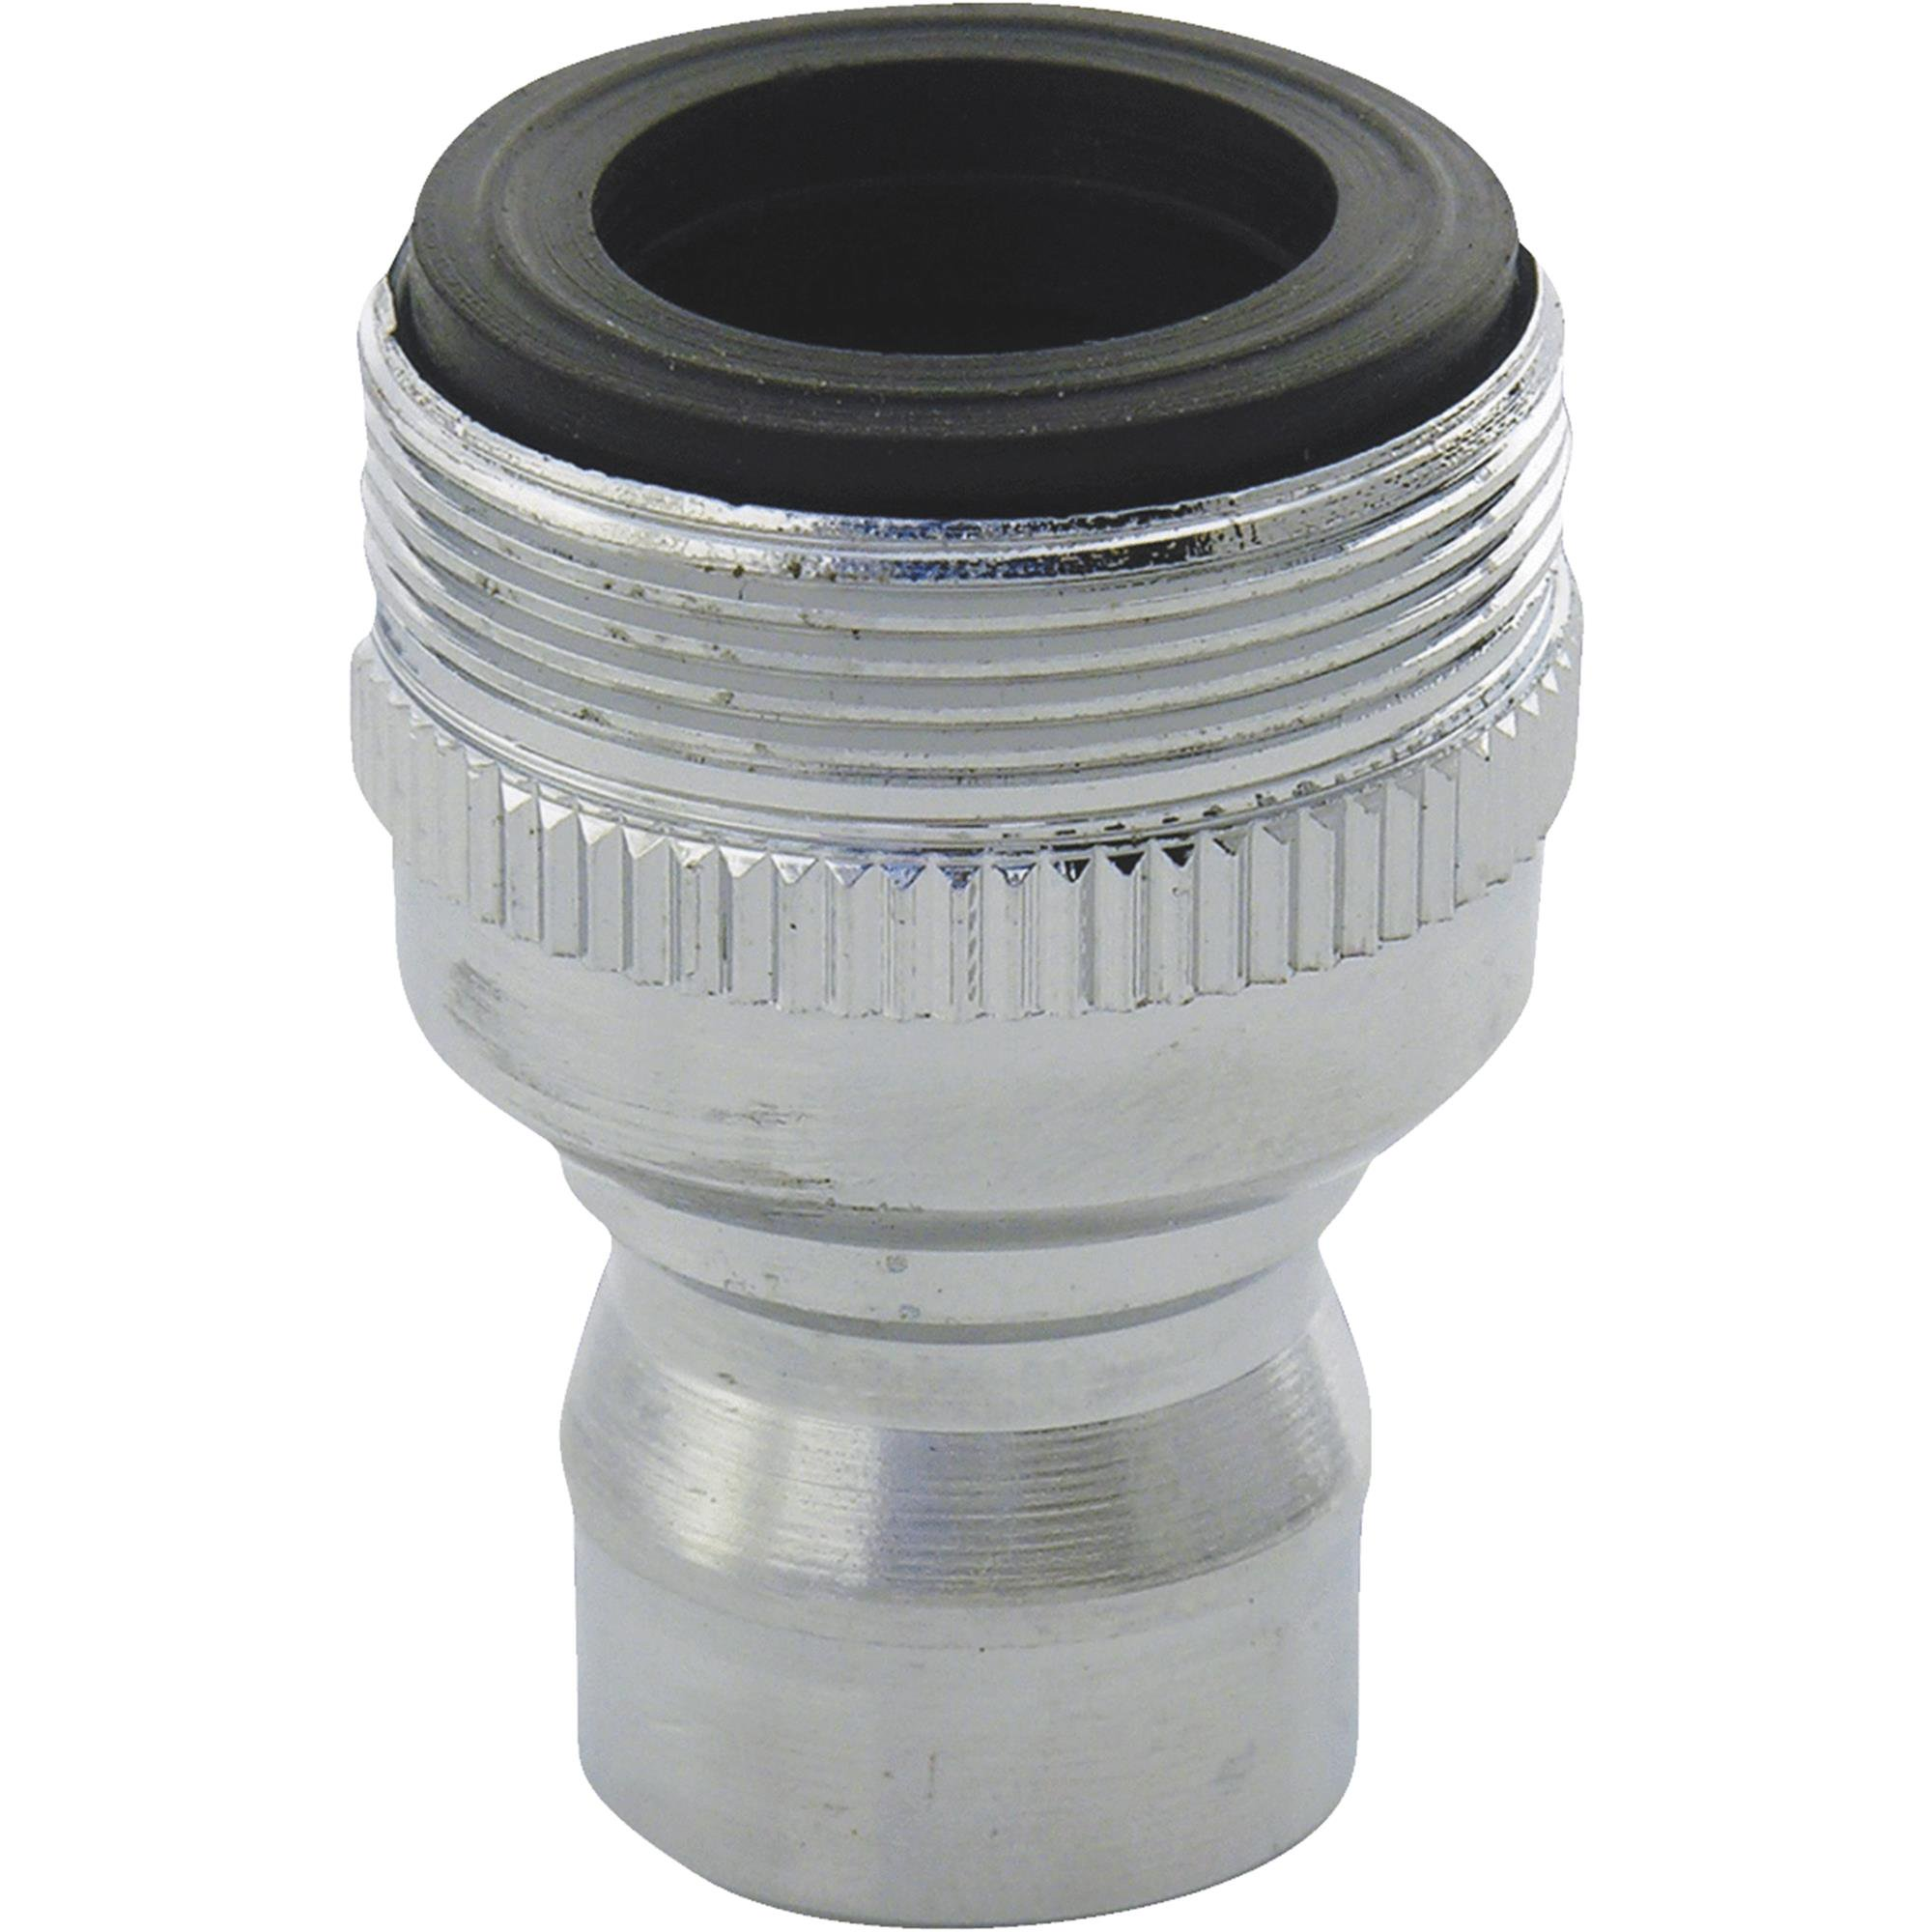 Lasco Faucet Aerator Snap Nipple for Portable Dishwasher Connector